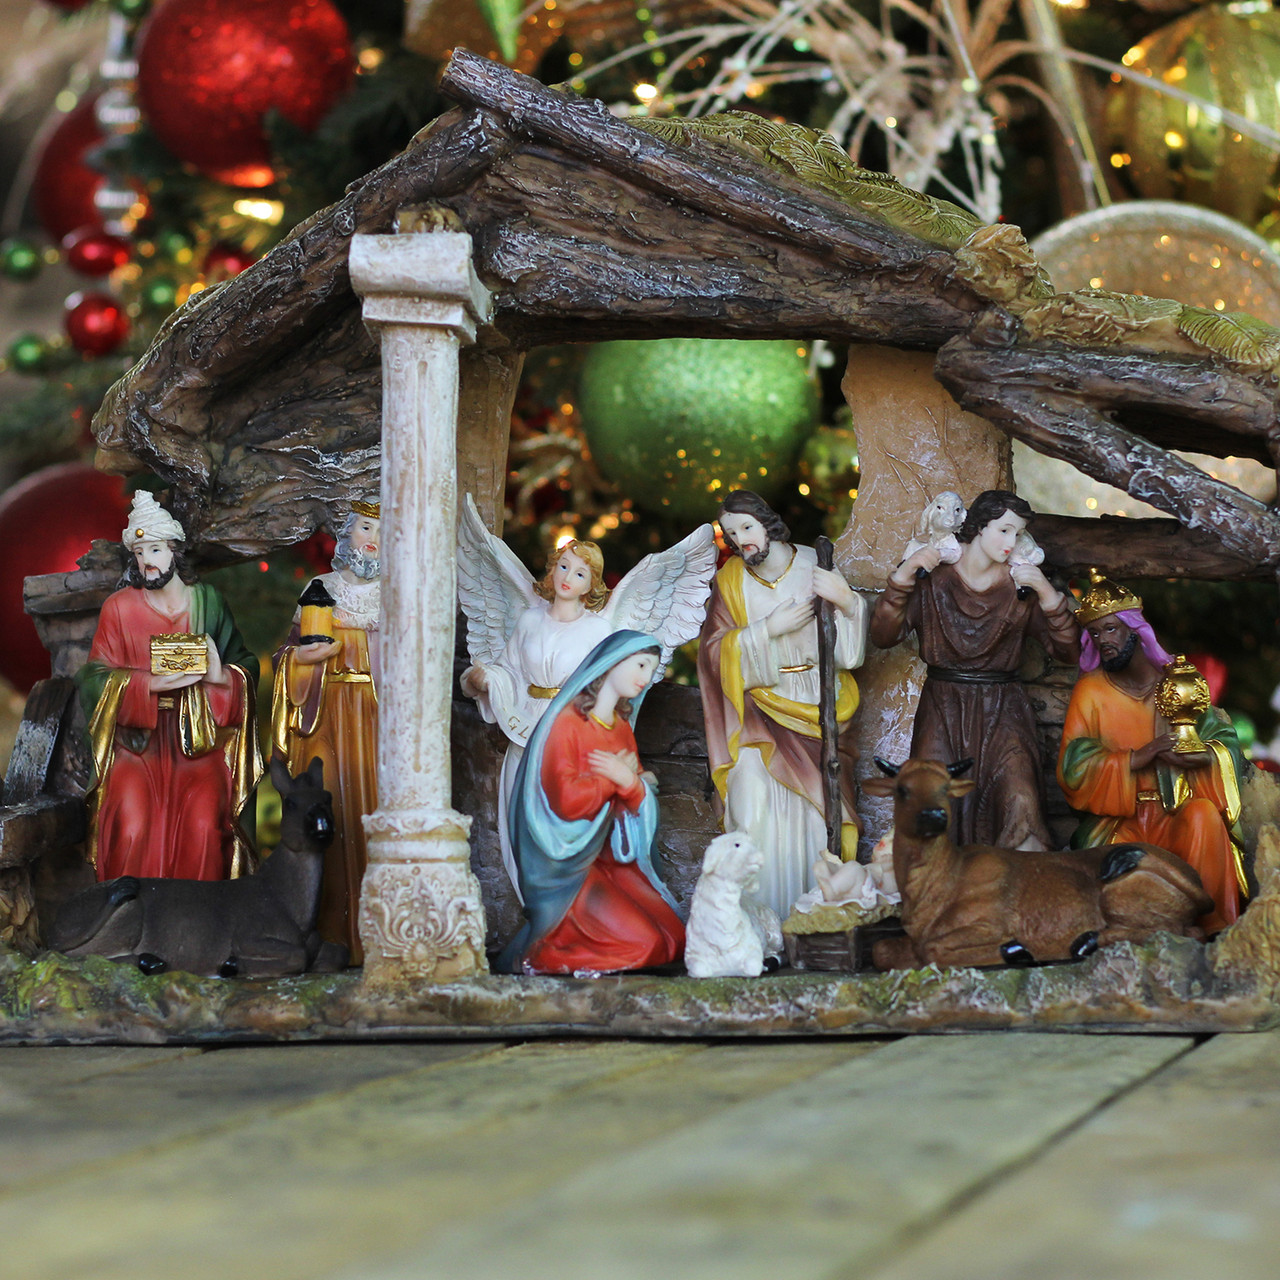 18 Traditional Religious Christmas Nativity With Stable House Decoration 32262120